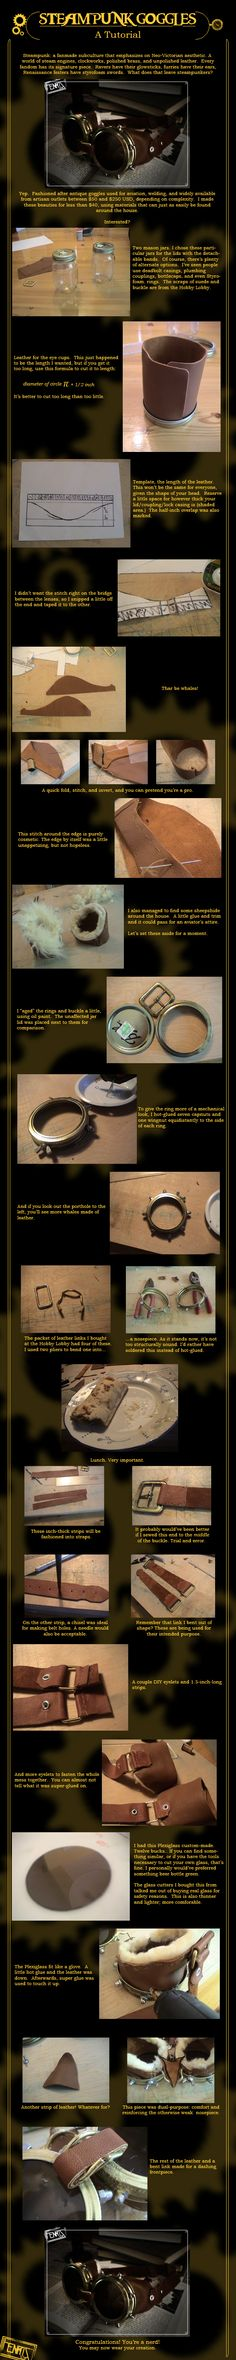 Steampunk Goggles: A Tutorial by *FenrisDesigns on deviantART - a better tutorial for goggles. Saved for David